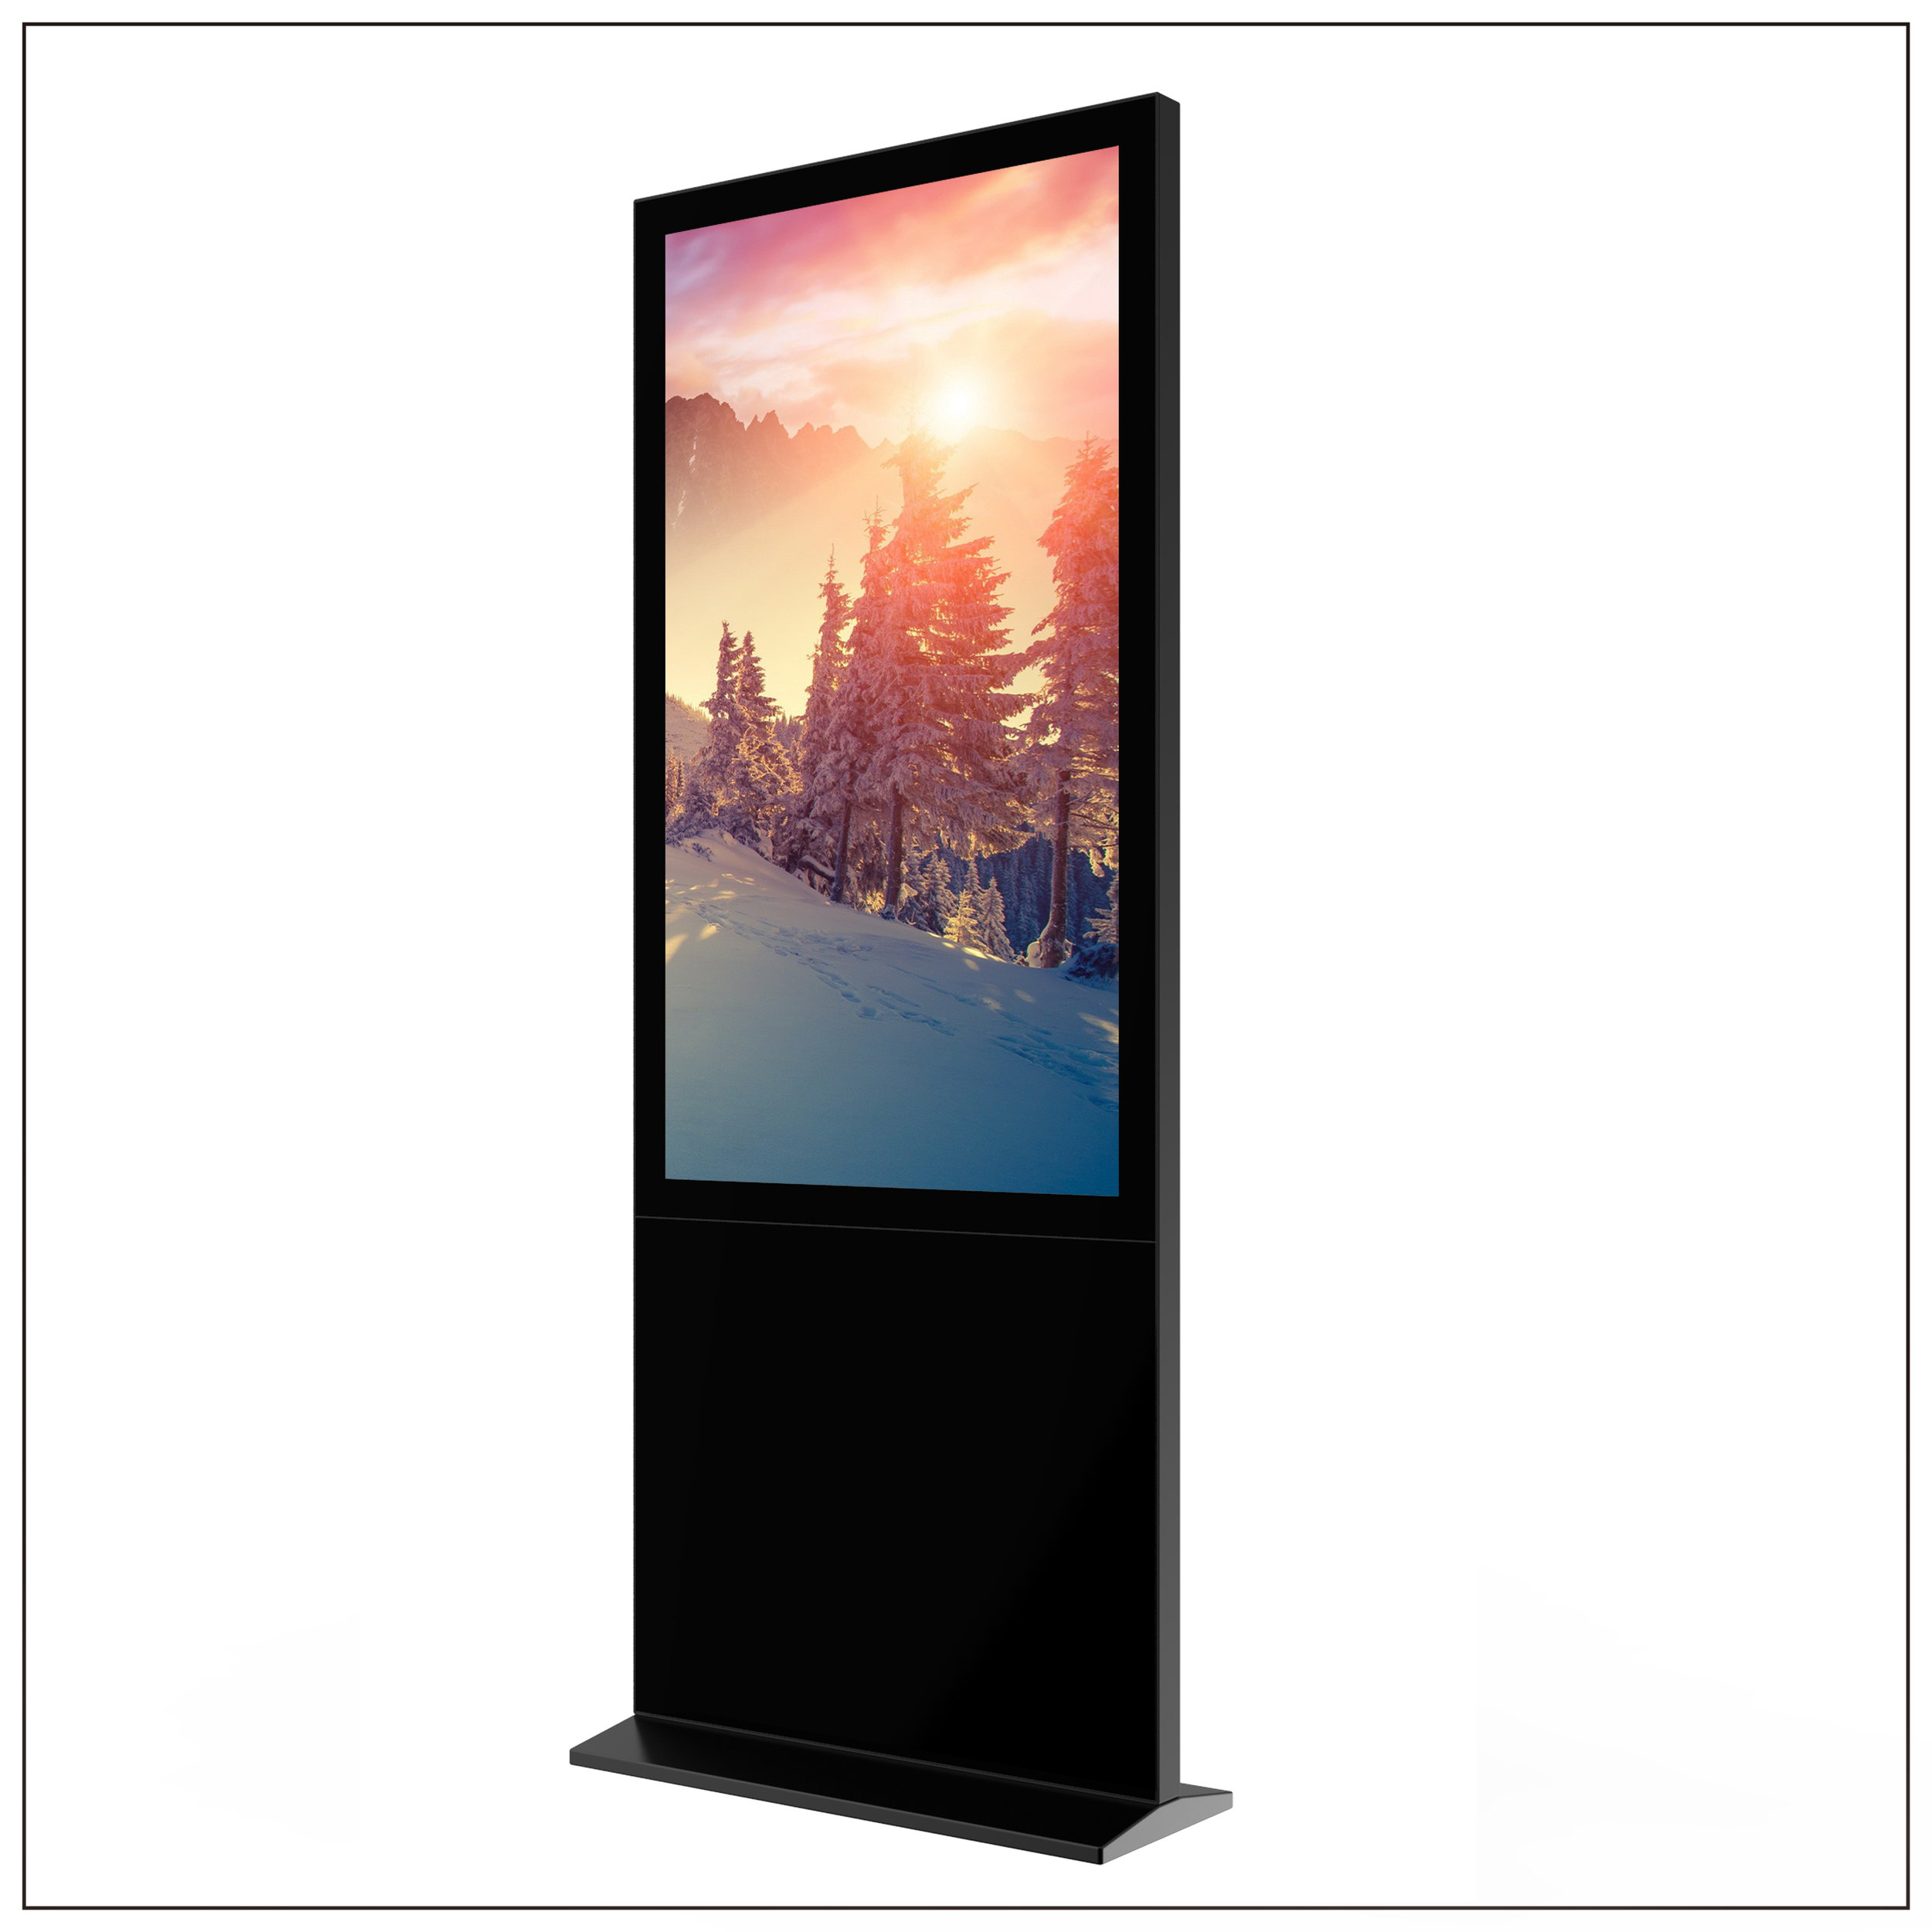 Ultra Thin Touch LCD Display - Panel Size: 55 inchBrightness: 450 nitResolution: 1920 × 1080